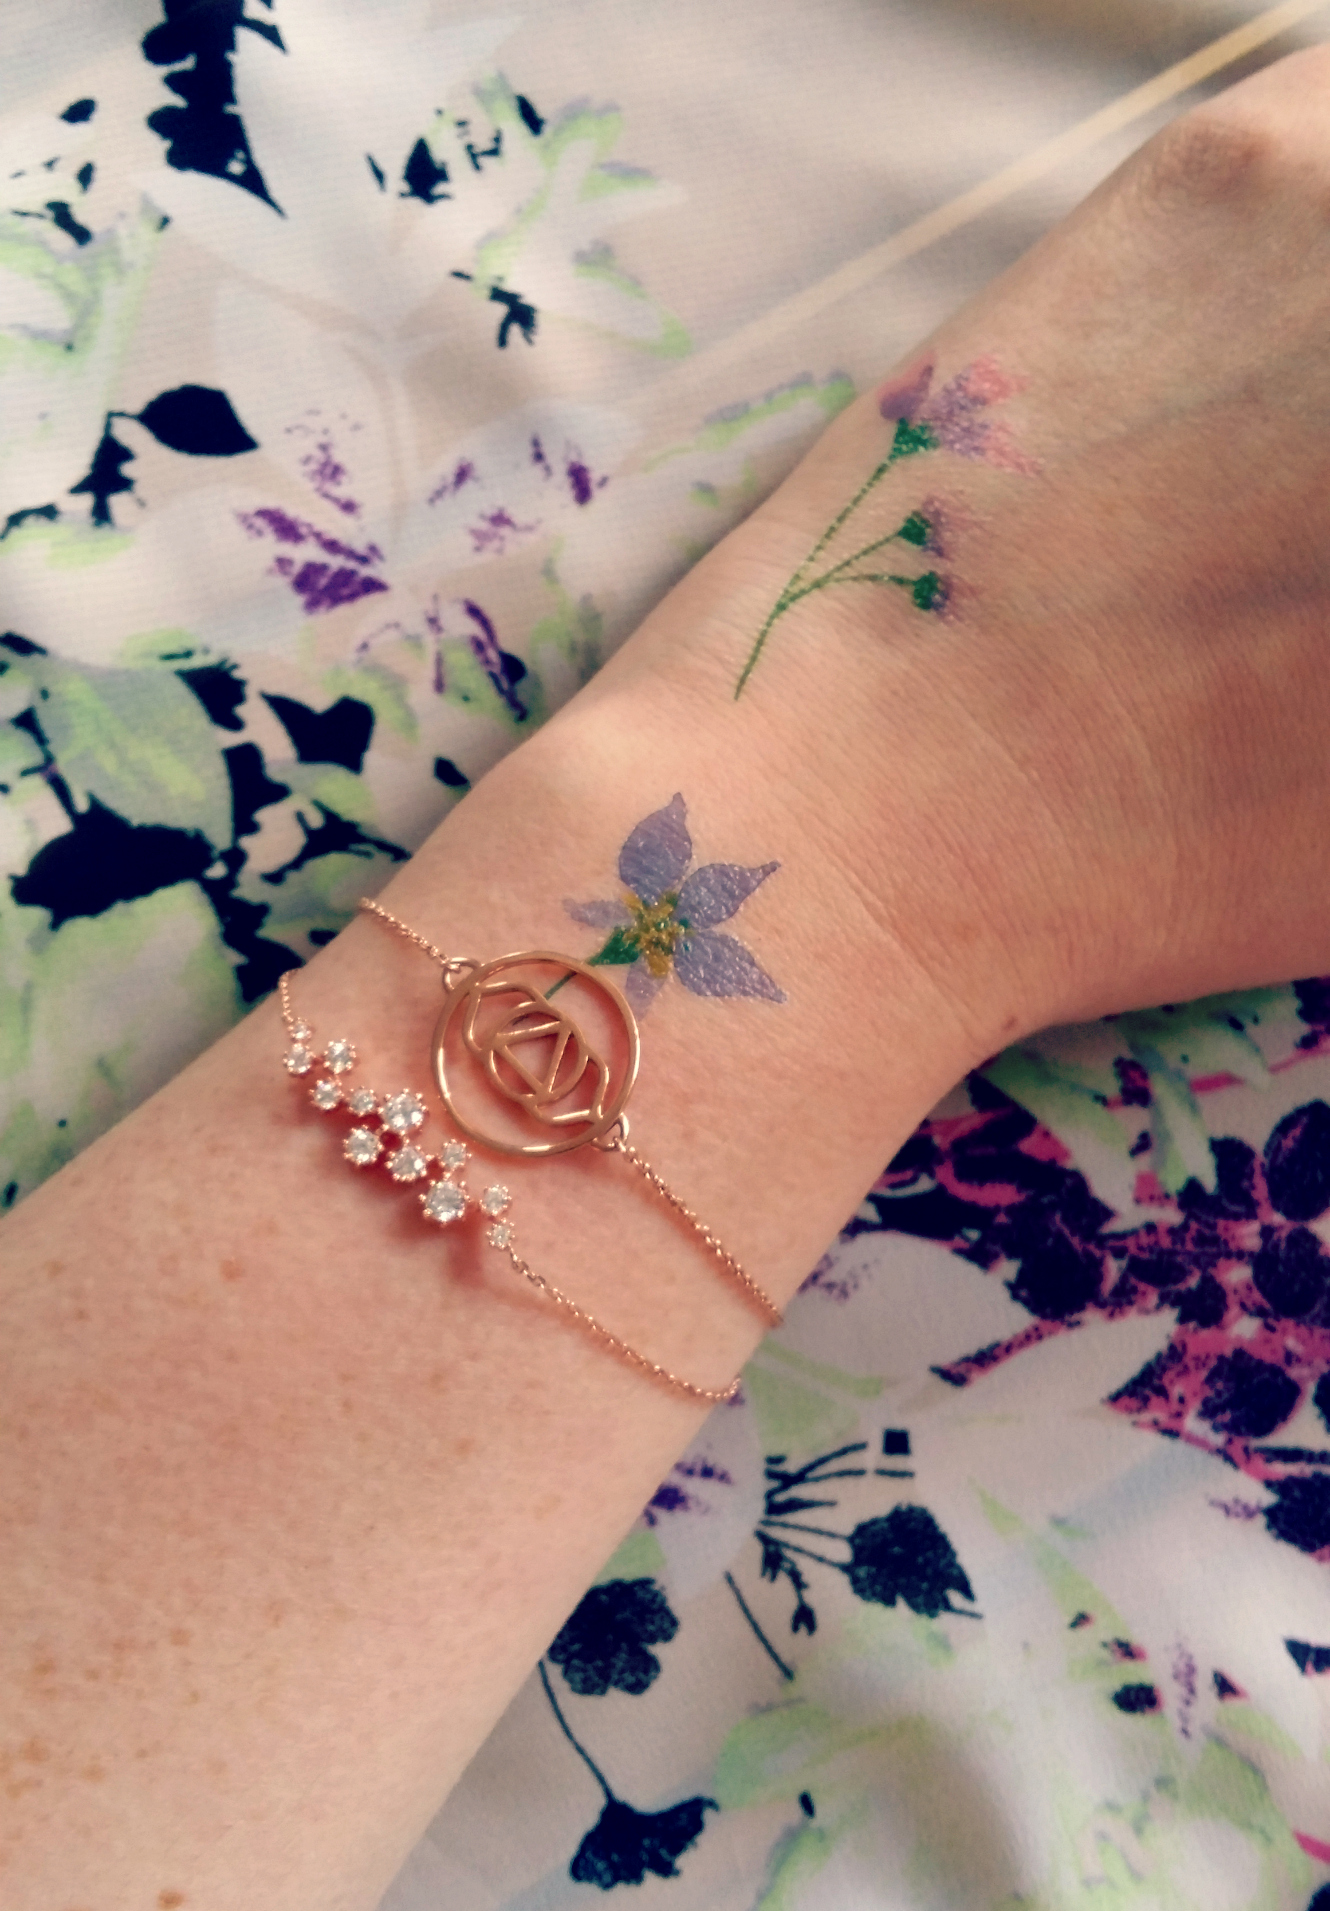 Rose Gold Jewellery And Flower Tattoos